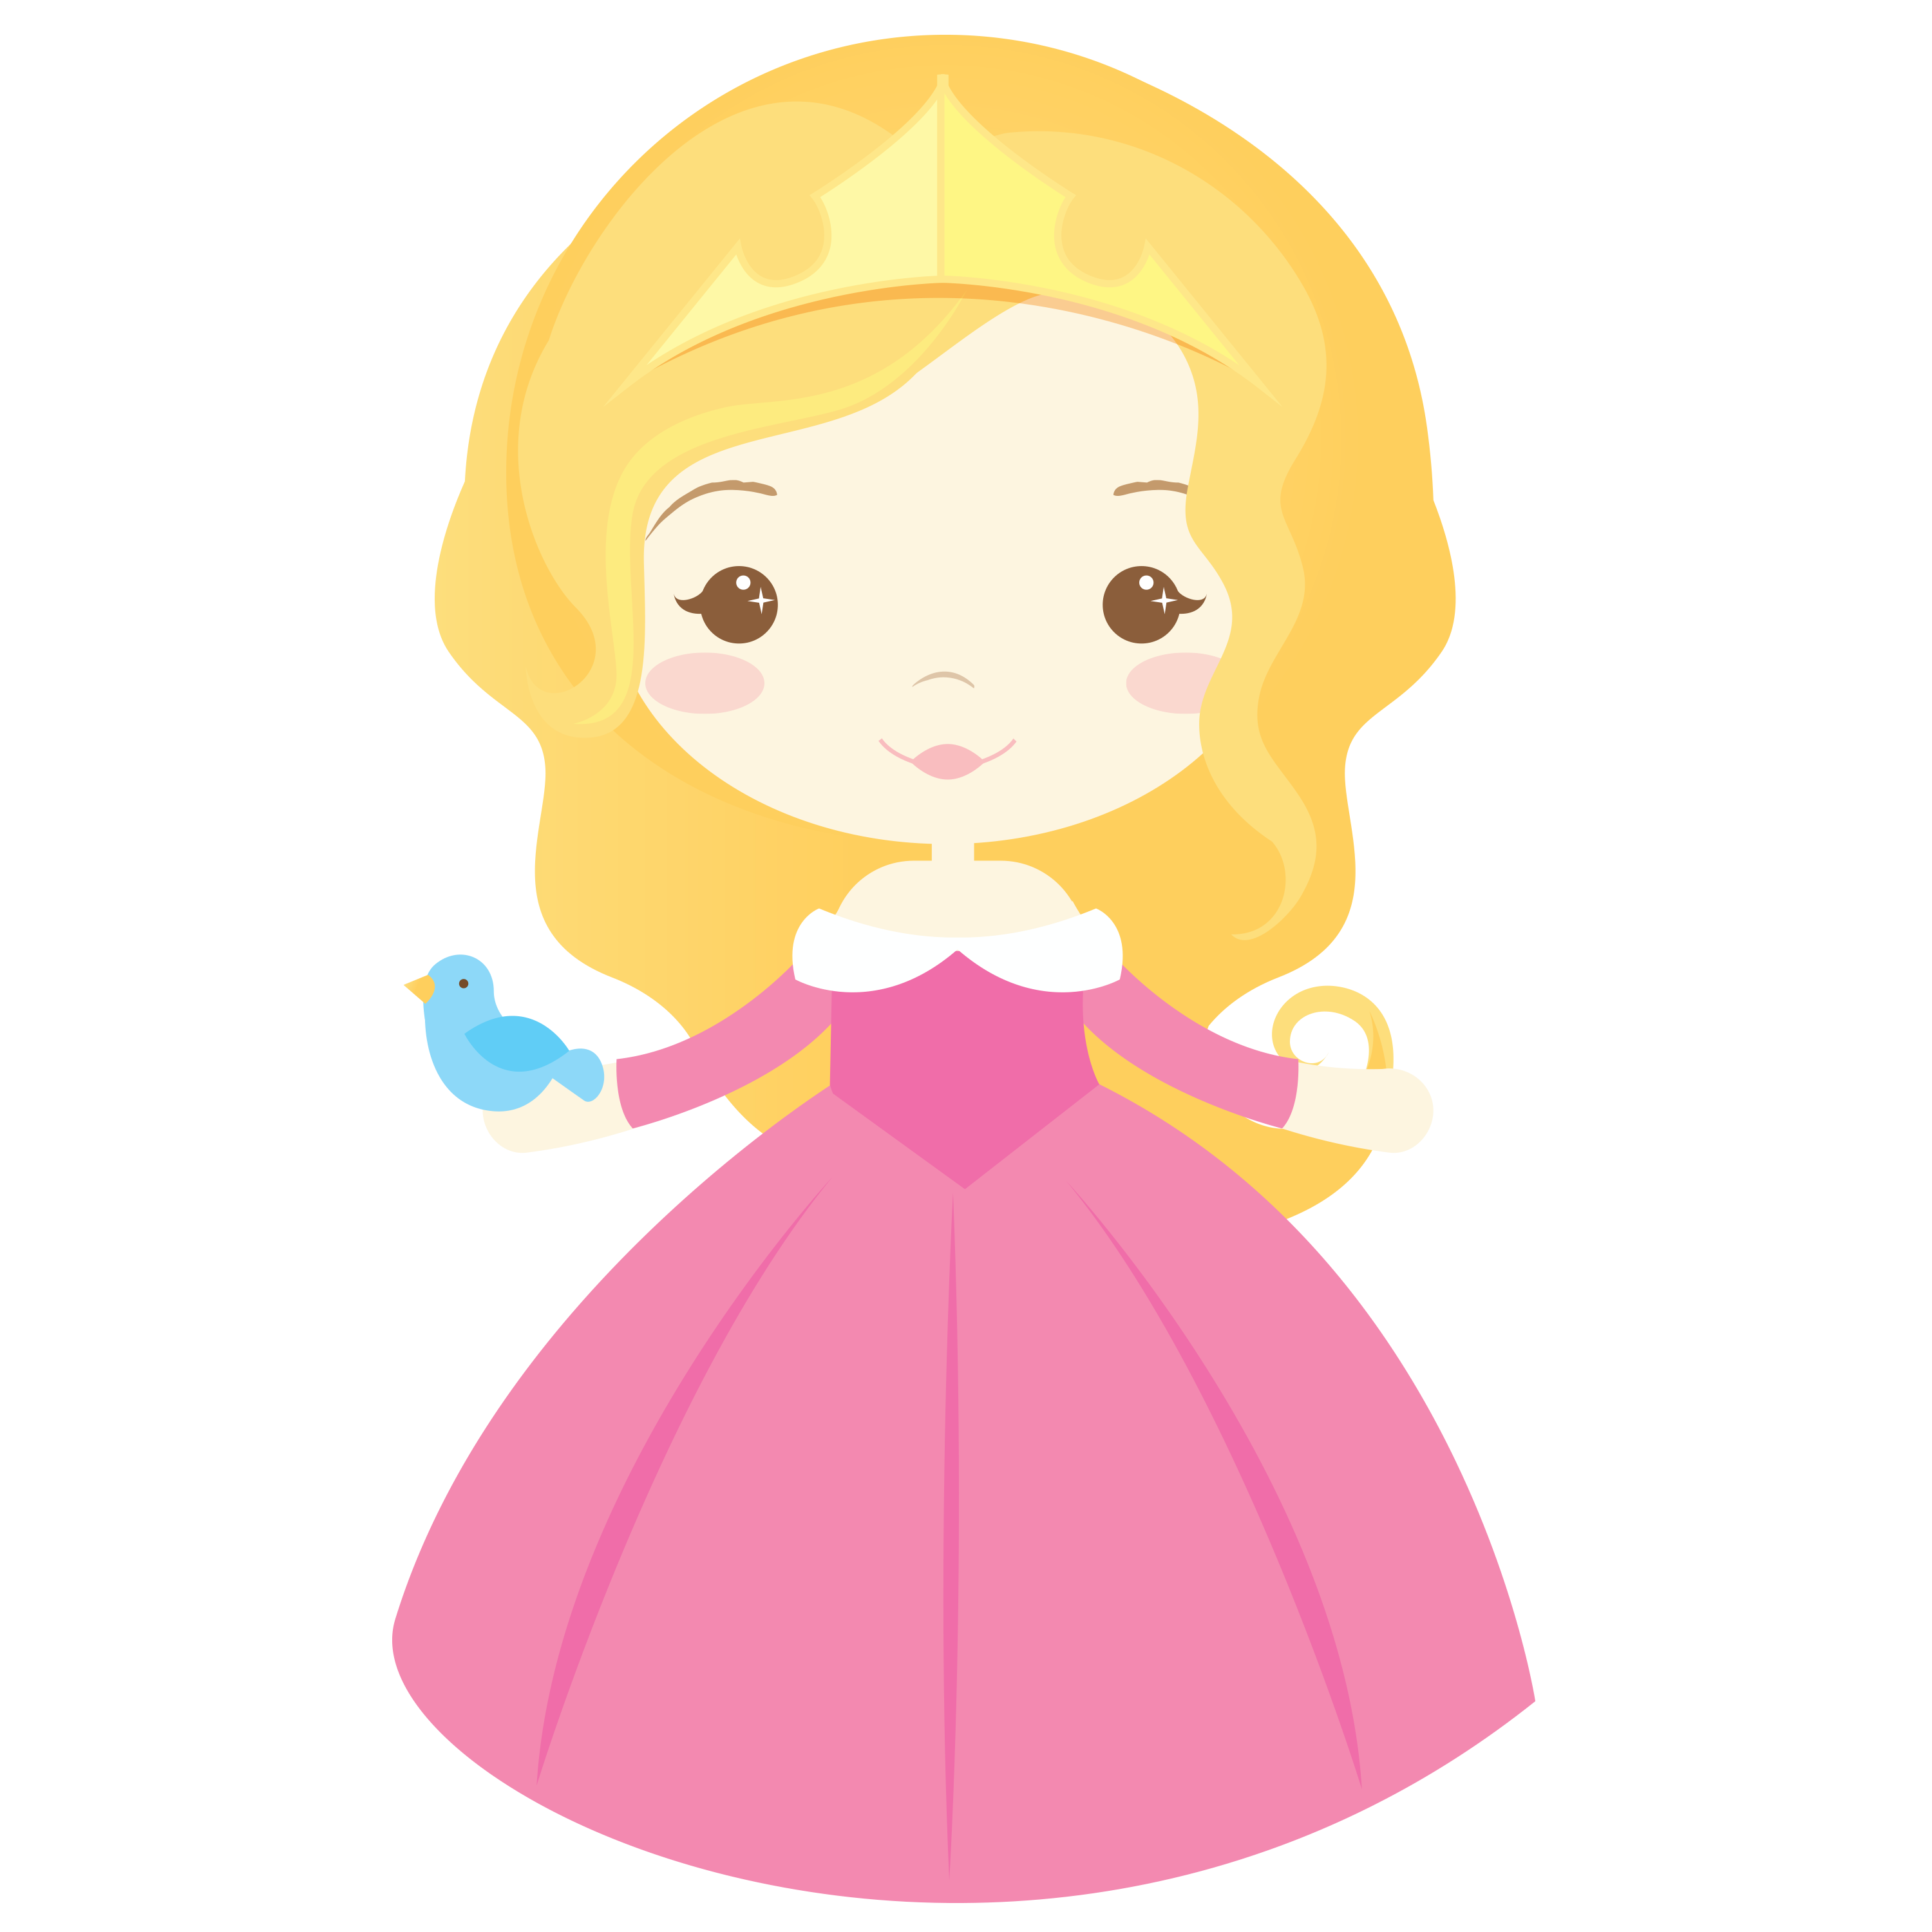 Aurora crown clipart royalty free library Princess Clipart For Kids at GetDrawings.com   Free for personal use ... royalty free library